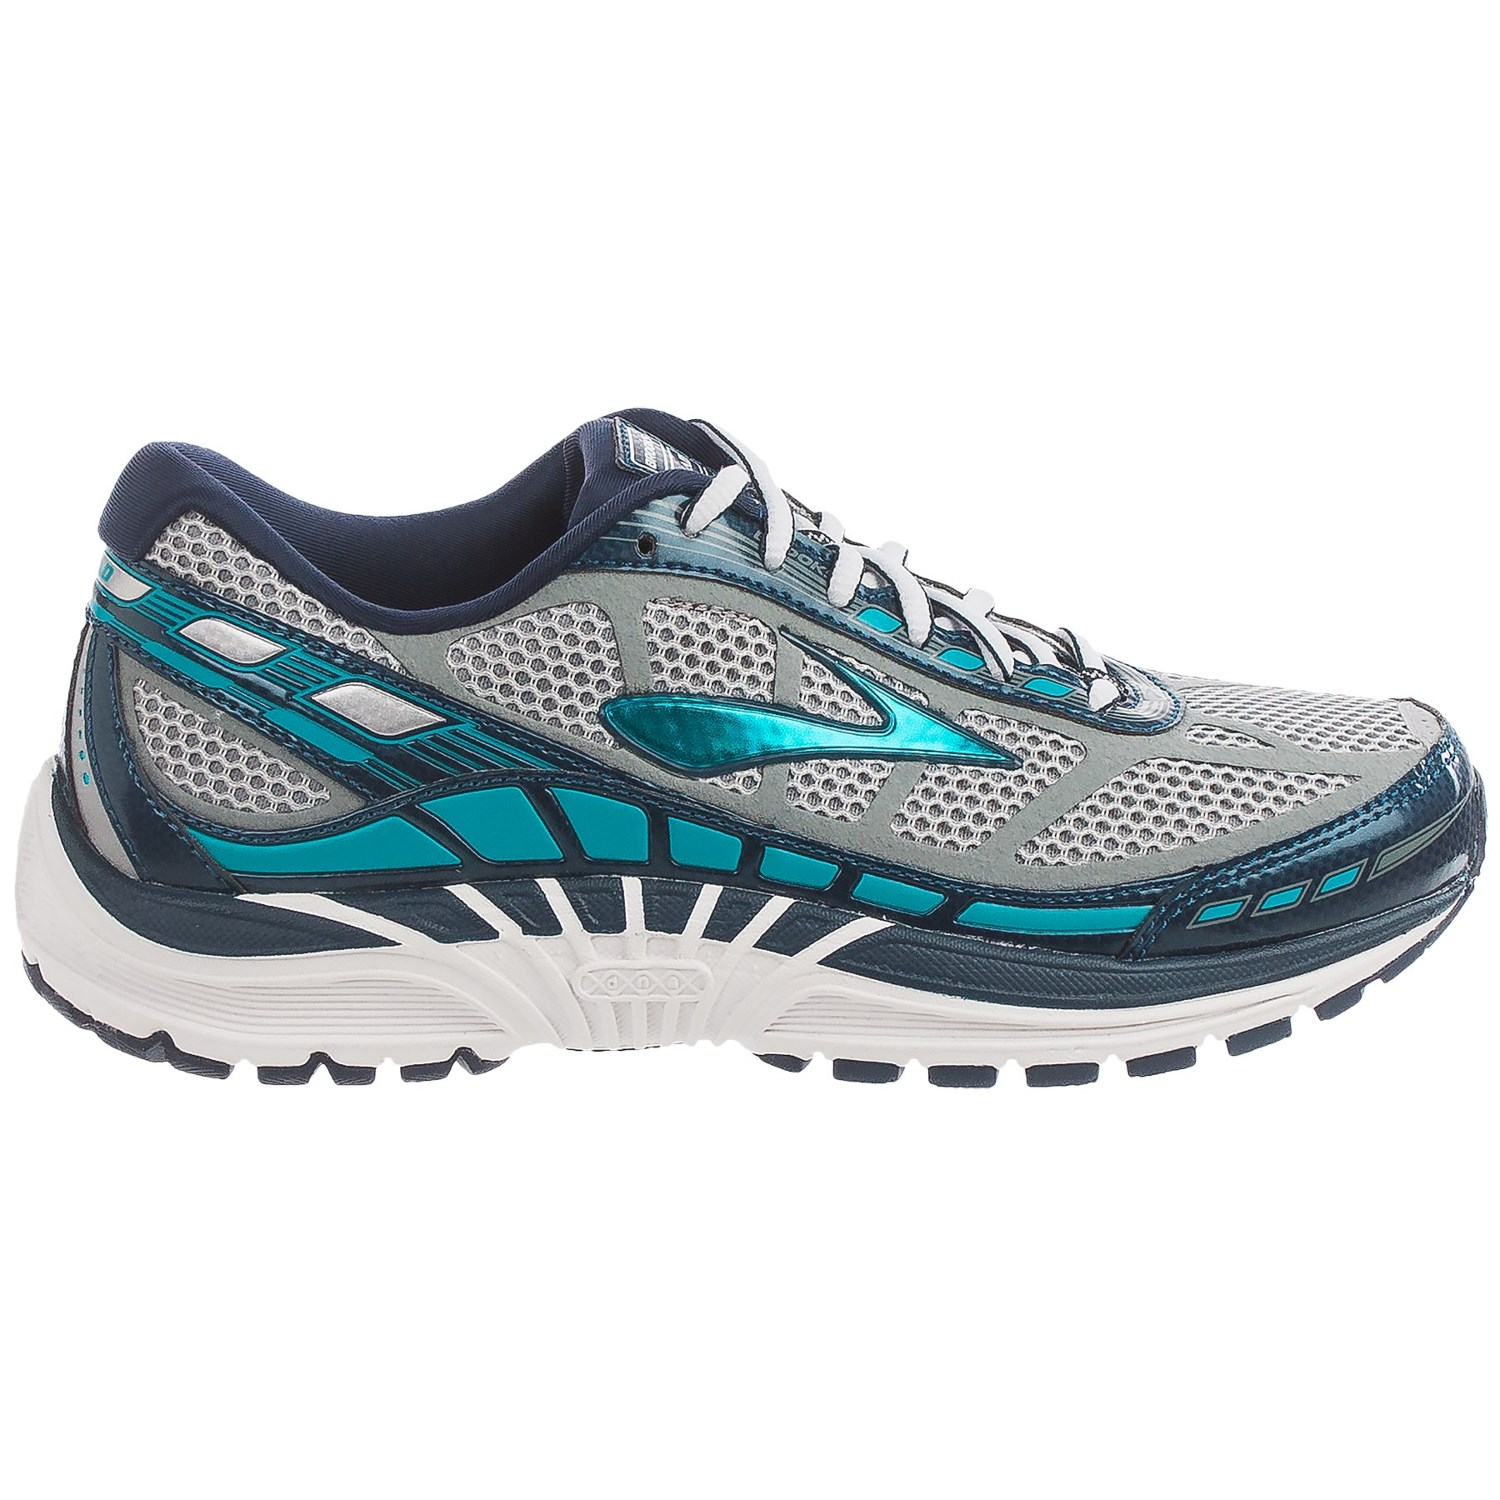 dyad 8 running shoes for